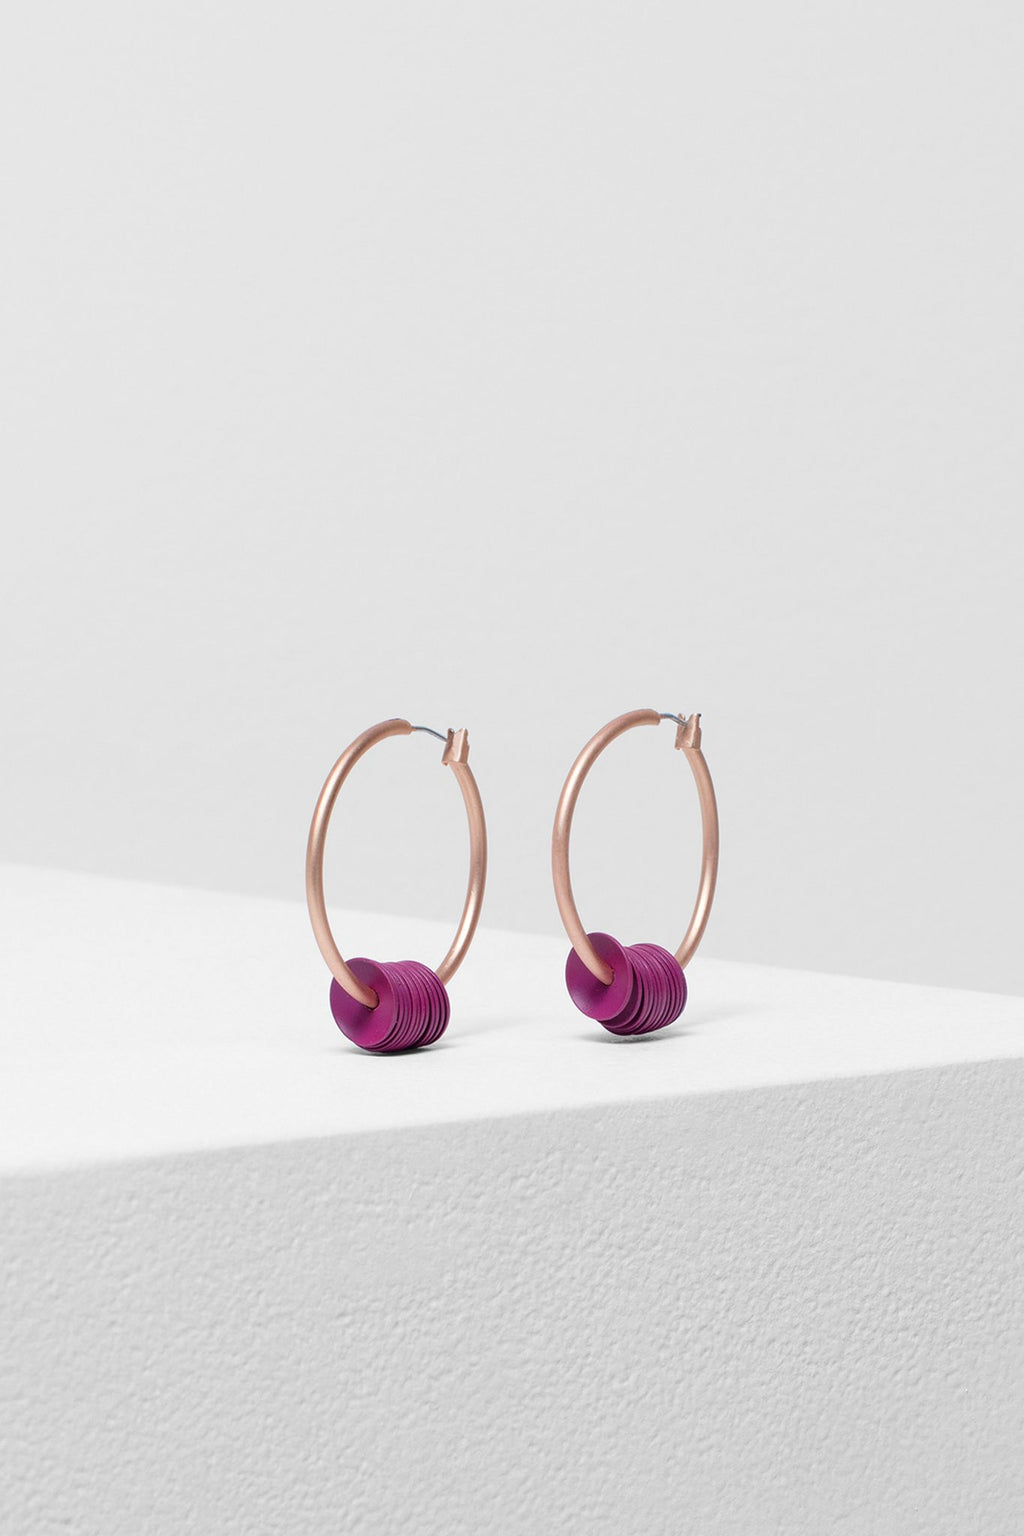 ELK The Label - Lerum Disc Earrings Magenta online at PAYA boutique